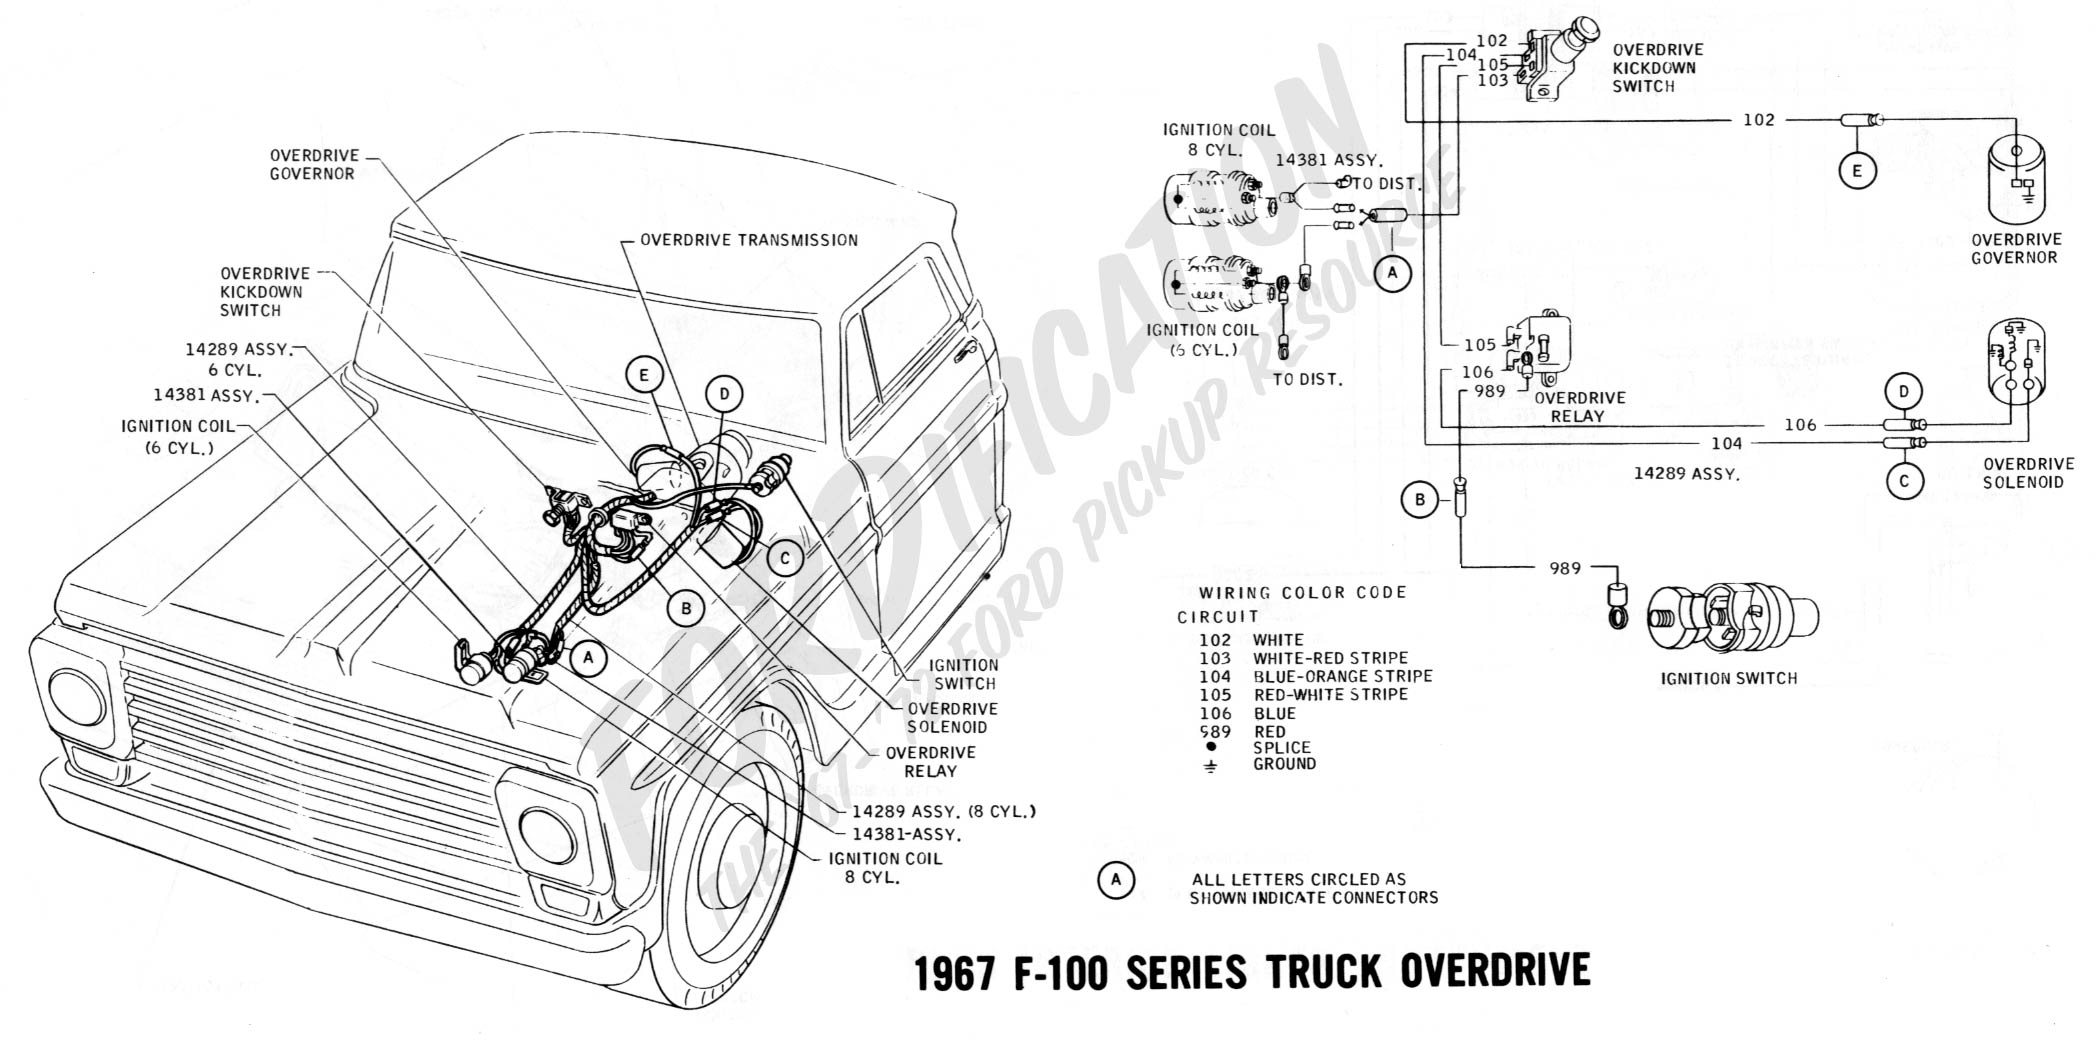 67 F100 Solenoid Wiring Manual Guide Diagram 64 Ford Diagrams Schema Rh 43 Verena Hoegerl De 68